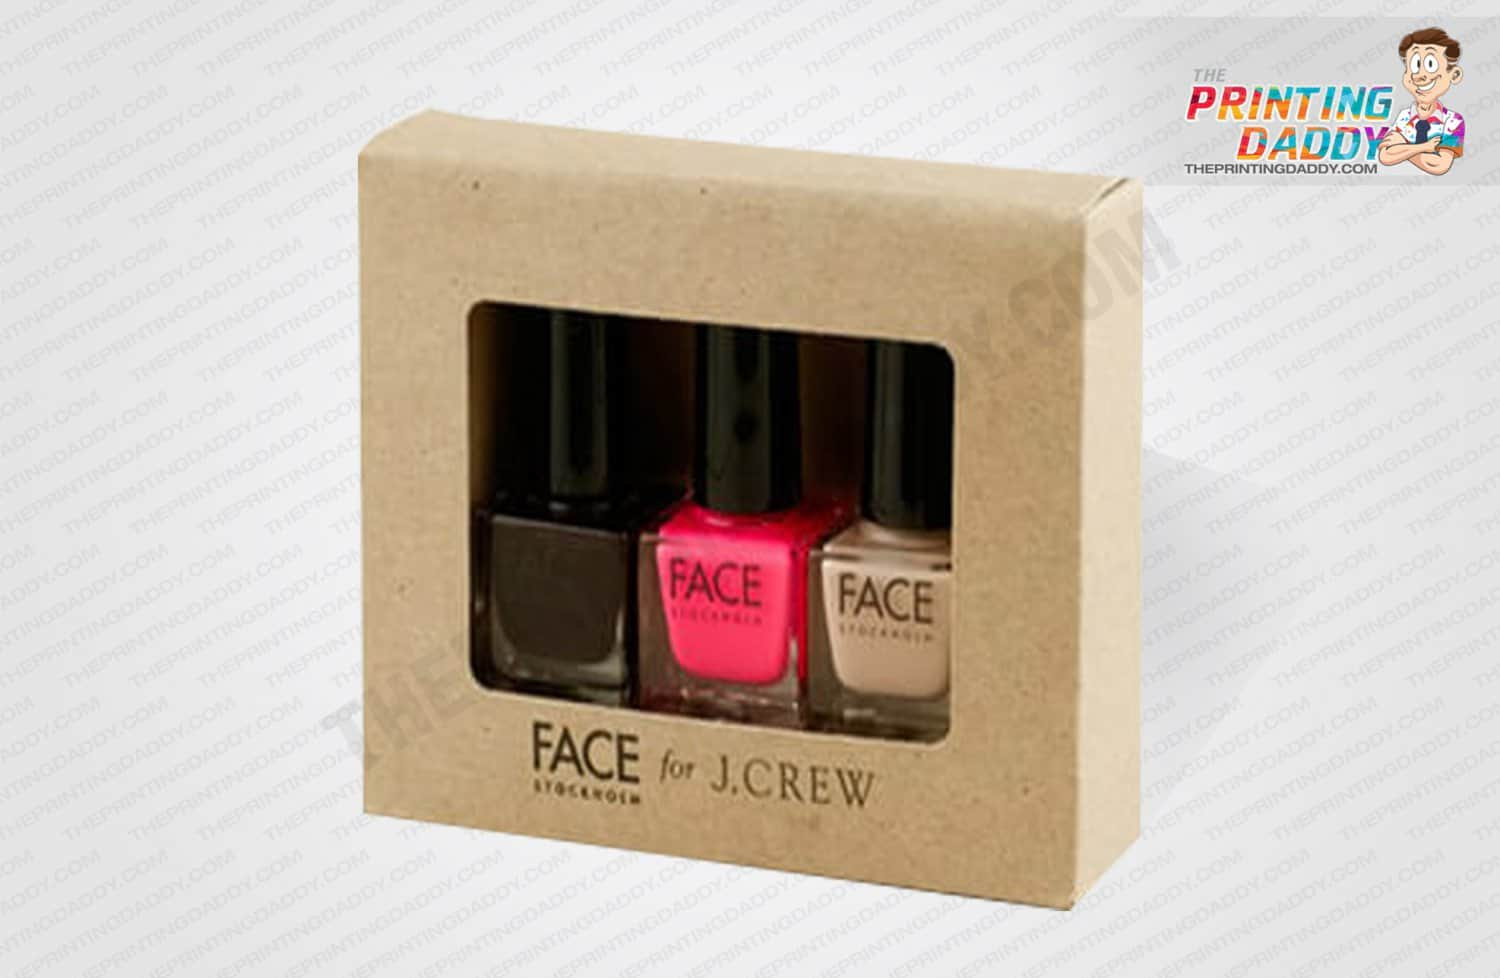 Wholesale Custom Nail Product Packaging Boxes | The Printing Daddy